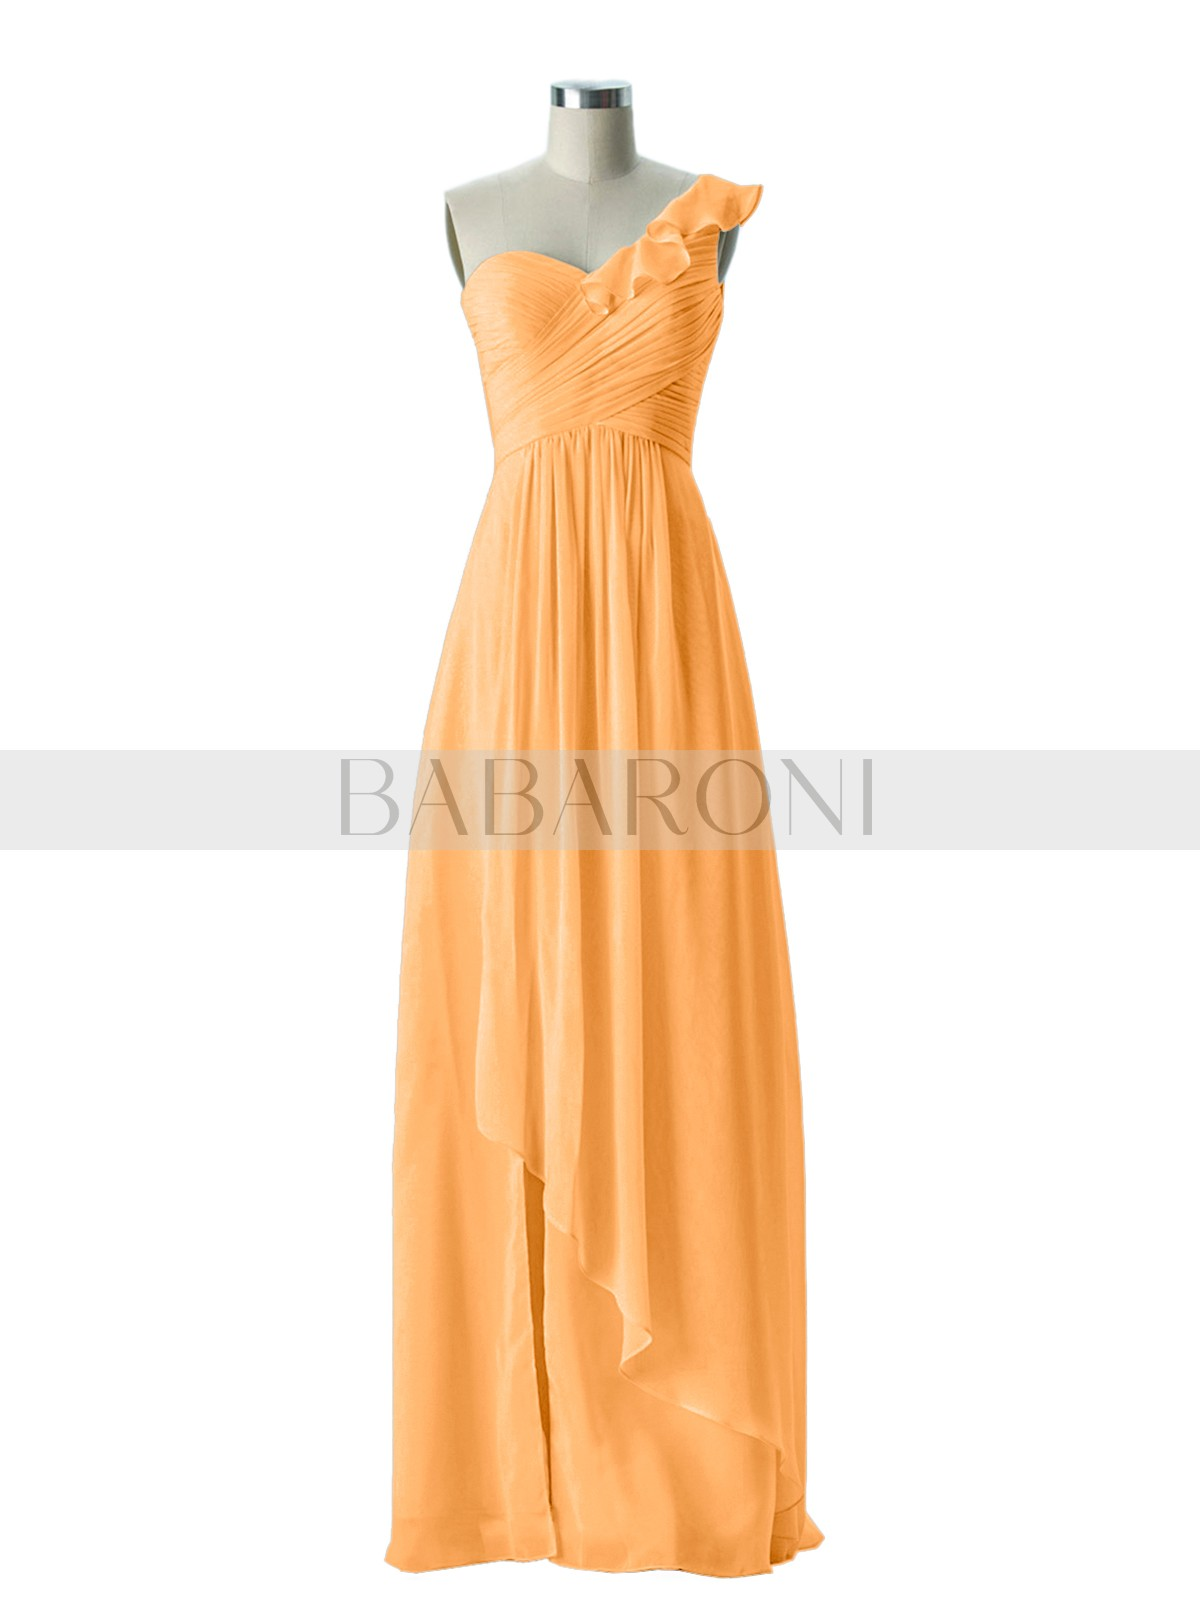 Chiffon Bridesmaid Dresses Babaroni Eden A Line Tangerine Zipper Ruffle Ruched Pleated Floor Length One Shoulder Loading Zoom